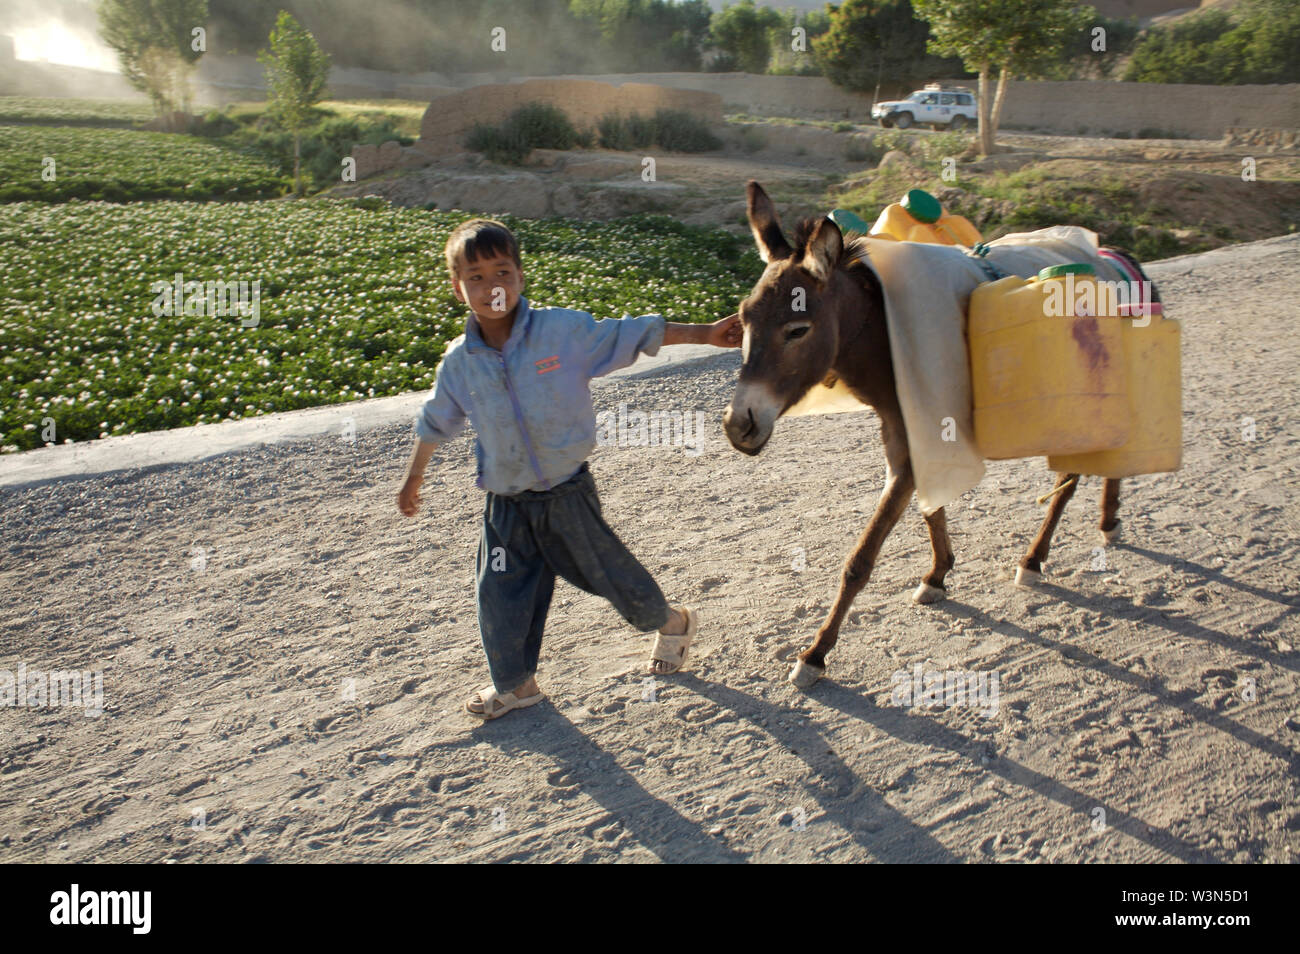 A young boy guides his donkey with four jerry cans full of water, on a dirt road, on the outskirts of the Bamyan city, in the central Bamyan province. He delivers and sell water door to door to those families who are either affluent or do not have the means to transport water from streams to their homes. The average Afghan men struggles to support their family on the equivalent of US $3 per day, and some 20 to 30 per cent of children of primary-school age work to supplement the family income. There are thousands of children who work in hazardous conditions all over Afghanistan. July 8, 2007. Stock Photo